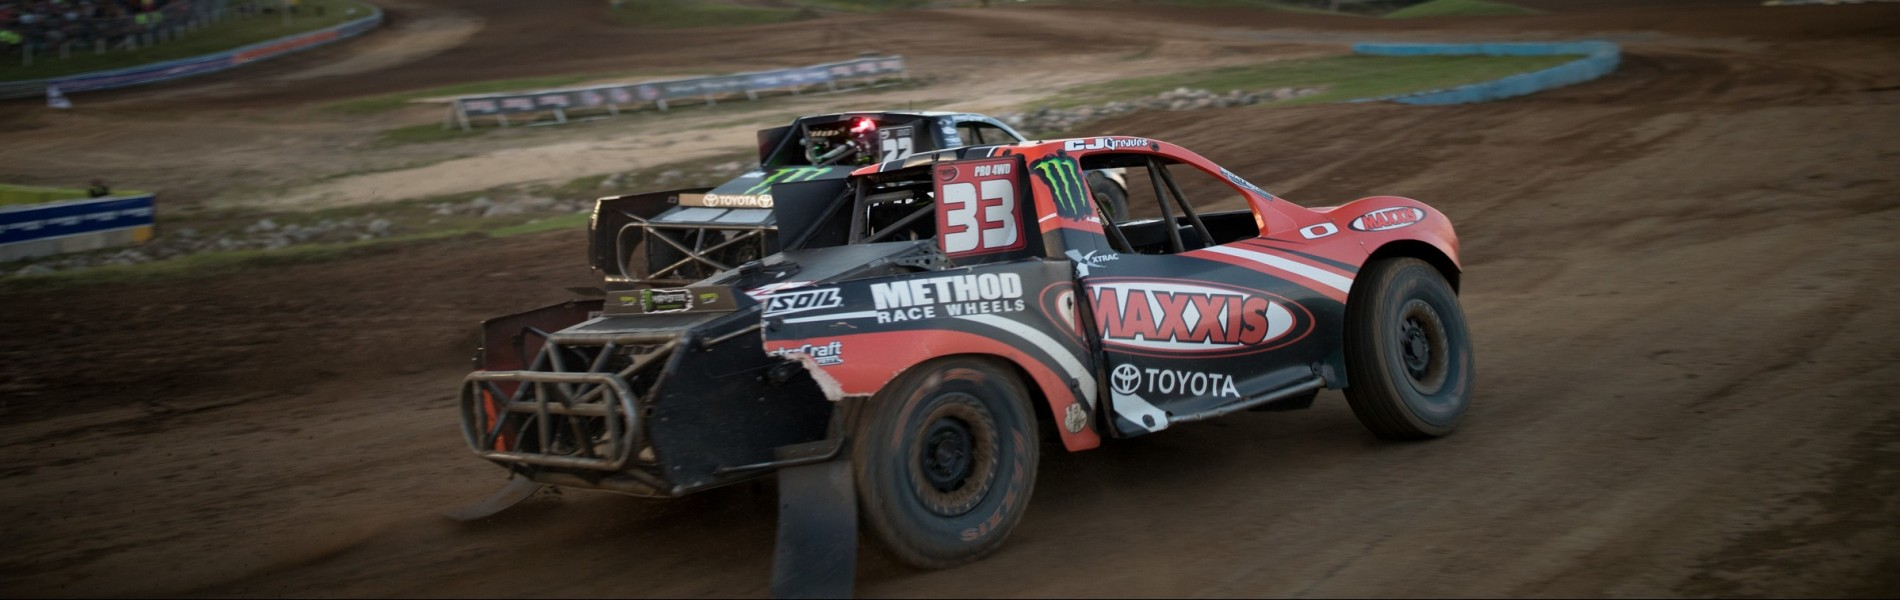 Johnny Greaves and CJ Greaves at the 2016 Off Road Championship Series at the AMSOIL Cup at Crandon